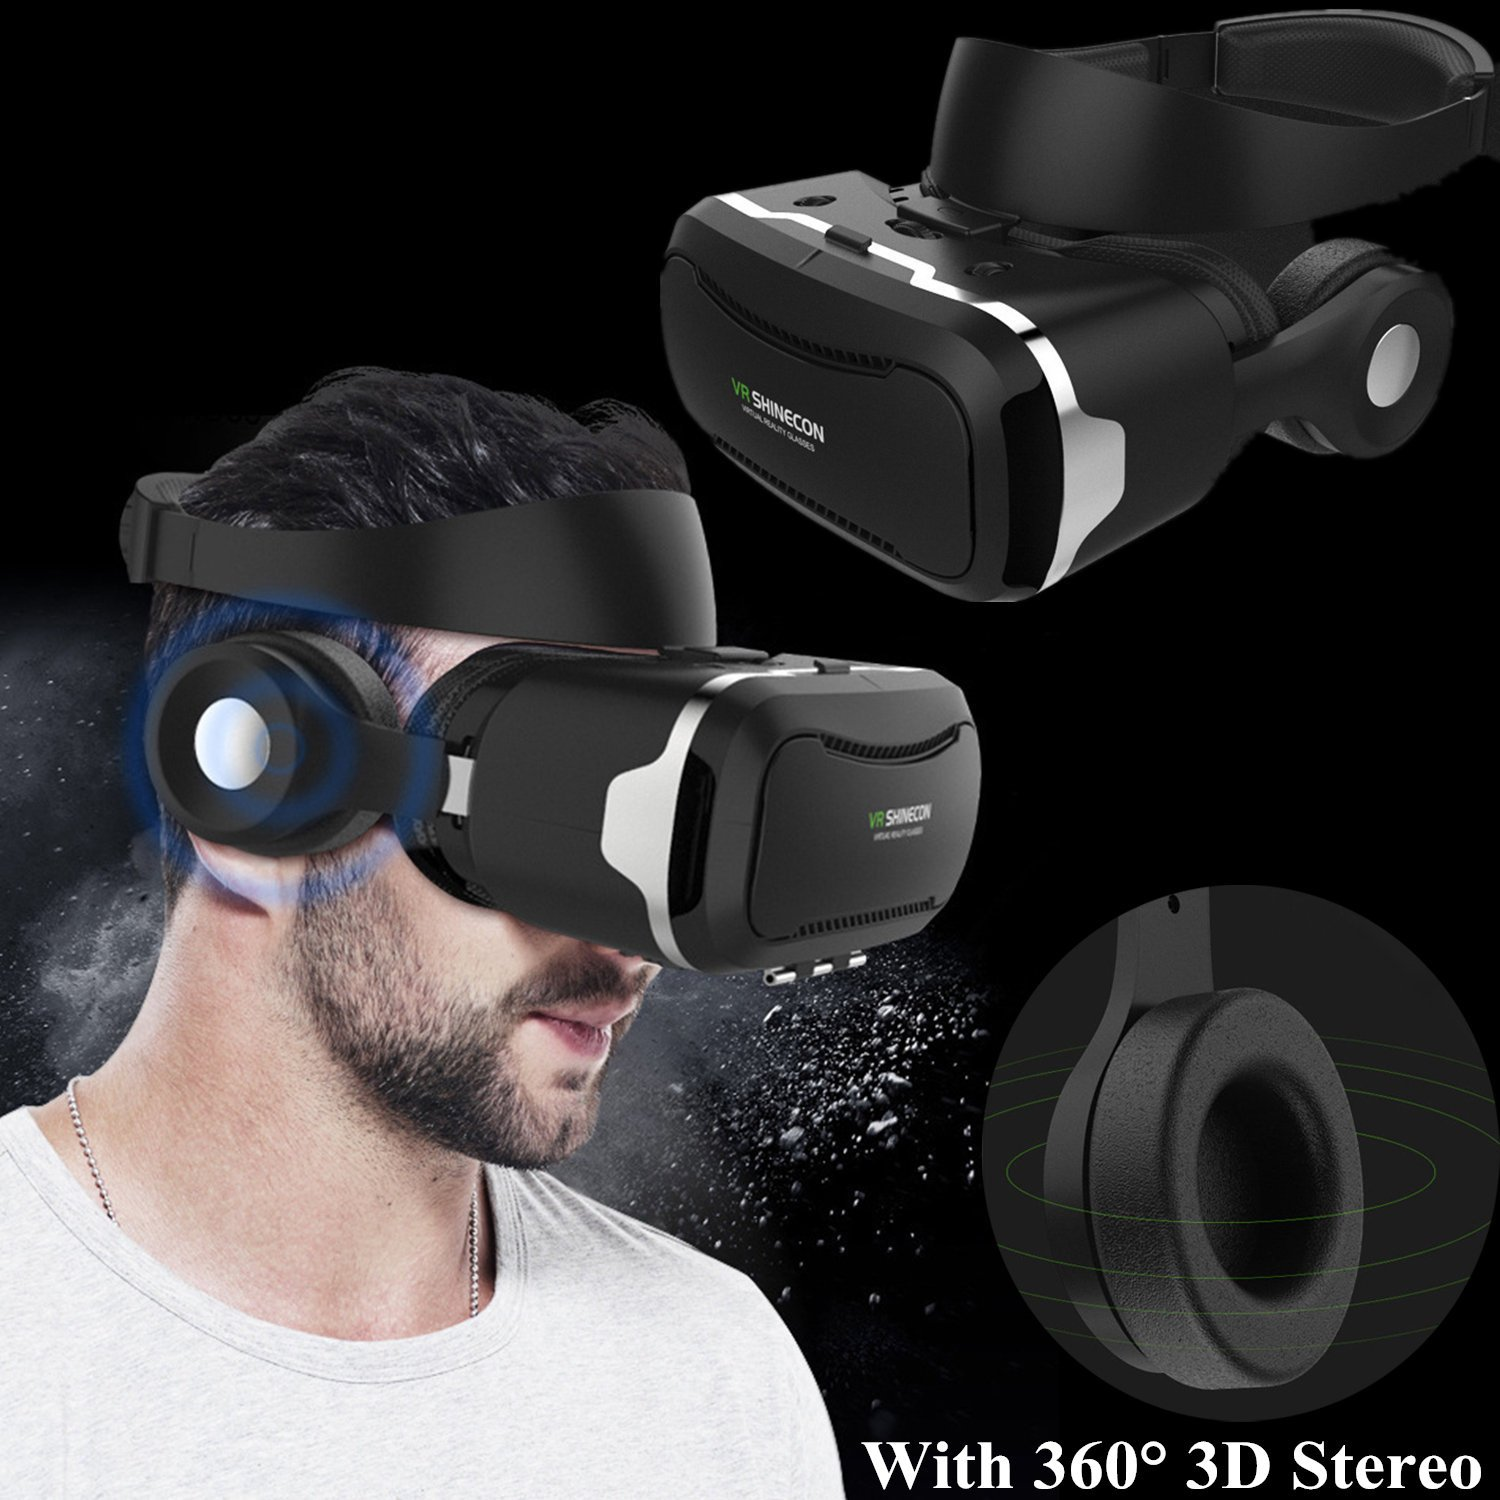 3D Virtual Reality Headset, Tsanglight VR Headset/Glasses with Built-in 3D Headphones for 4.5-6.0'' Android/iOS for Samsung Galaxy S7 Edge S6, iPhone 7 6 6S Plus etc by TSANGLIGHT